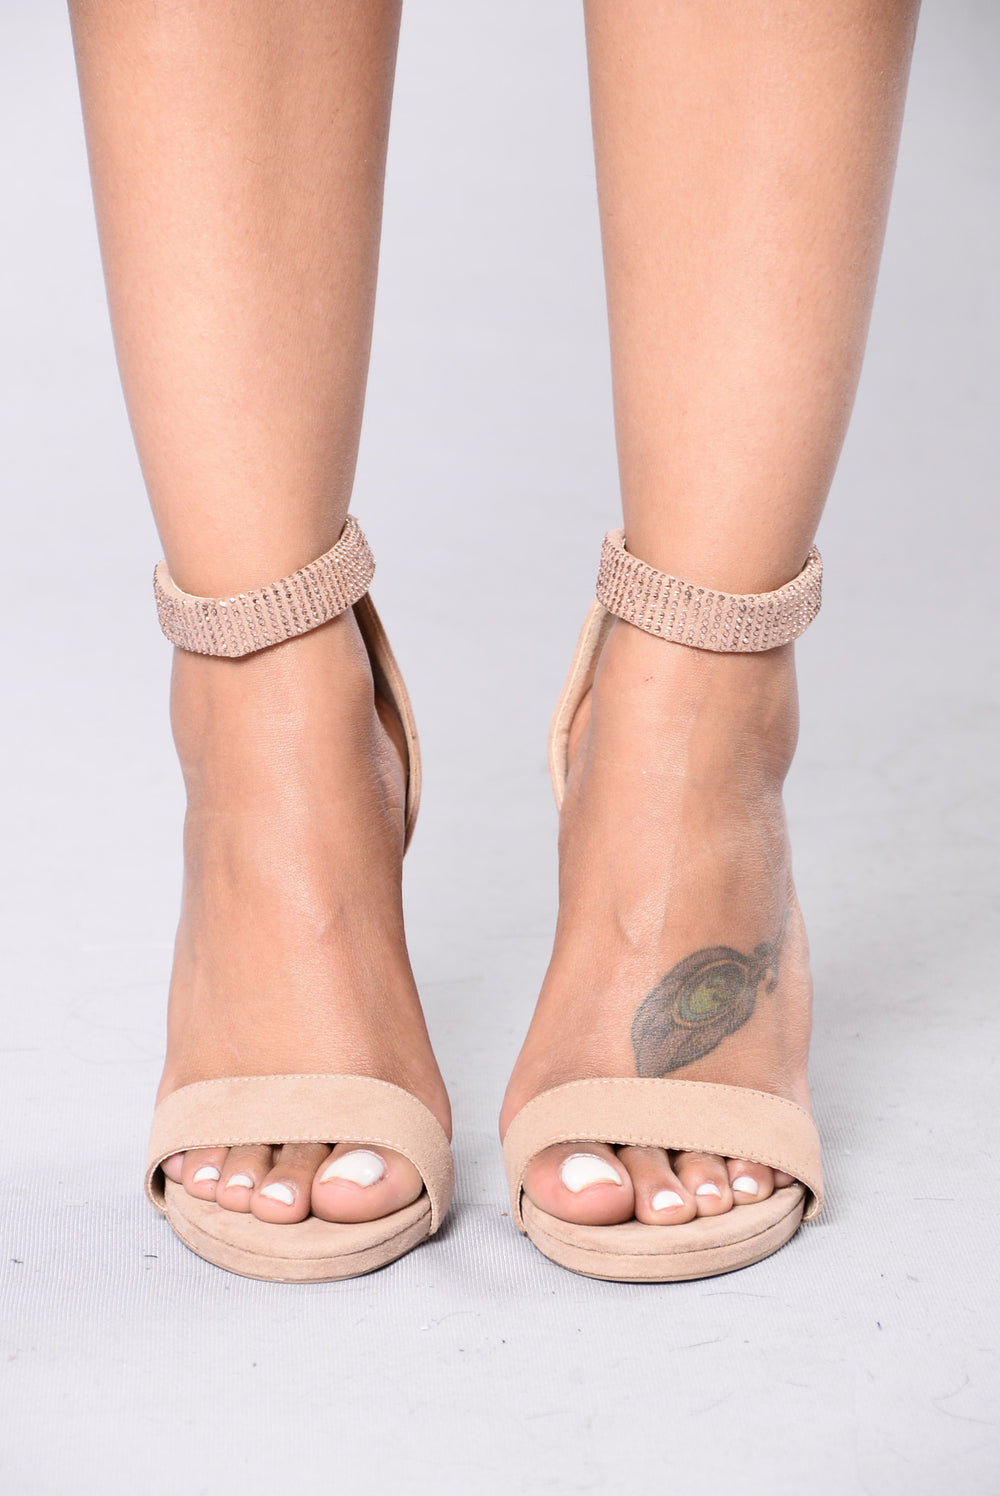 Everything I'd Ever Want Heels - Taupe